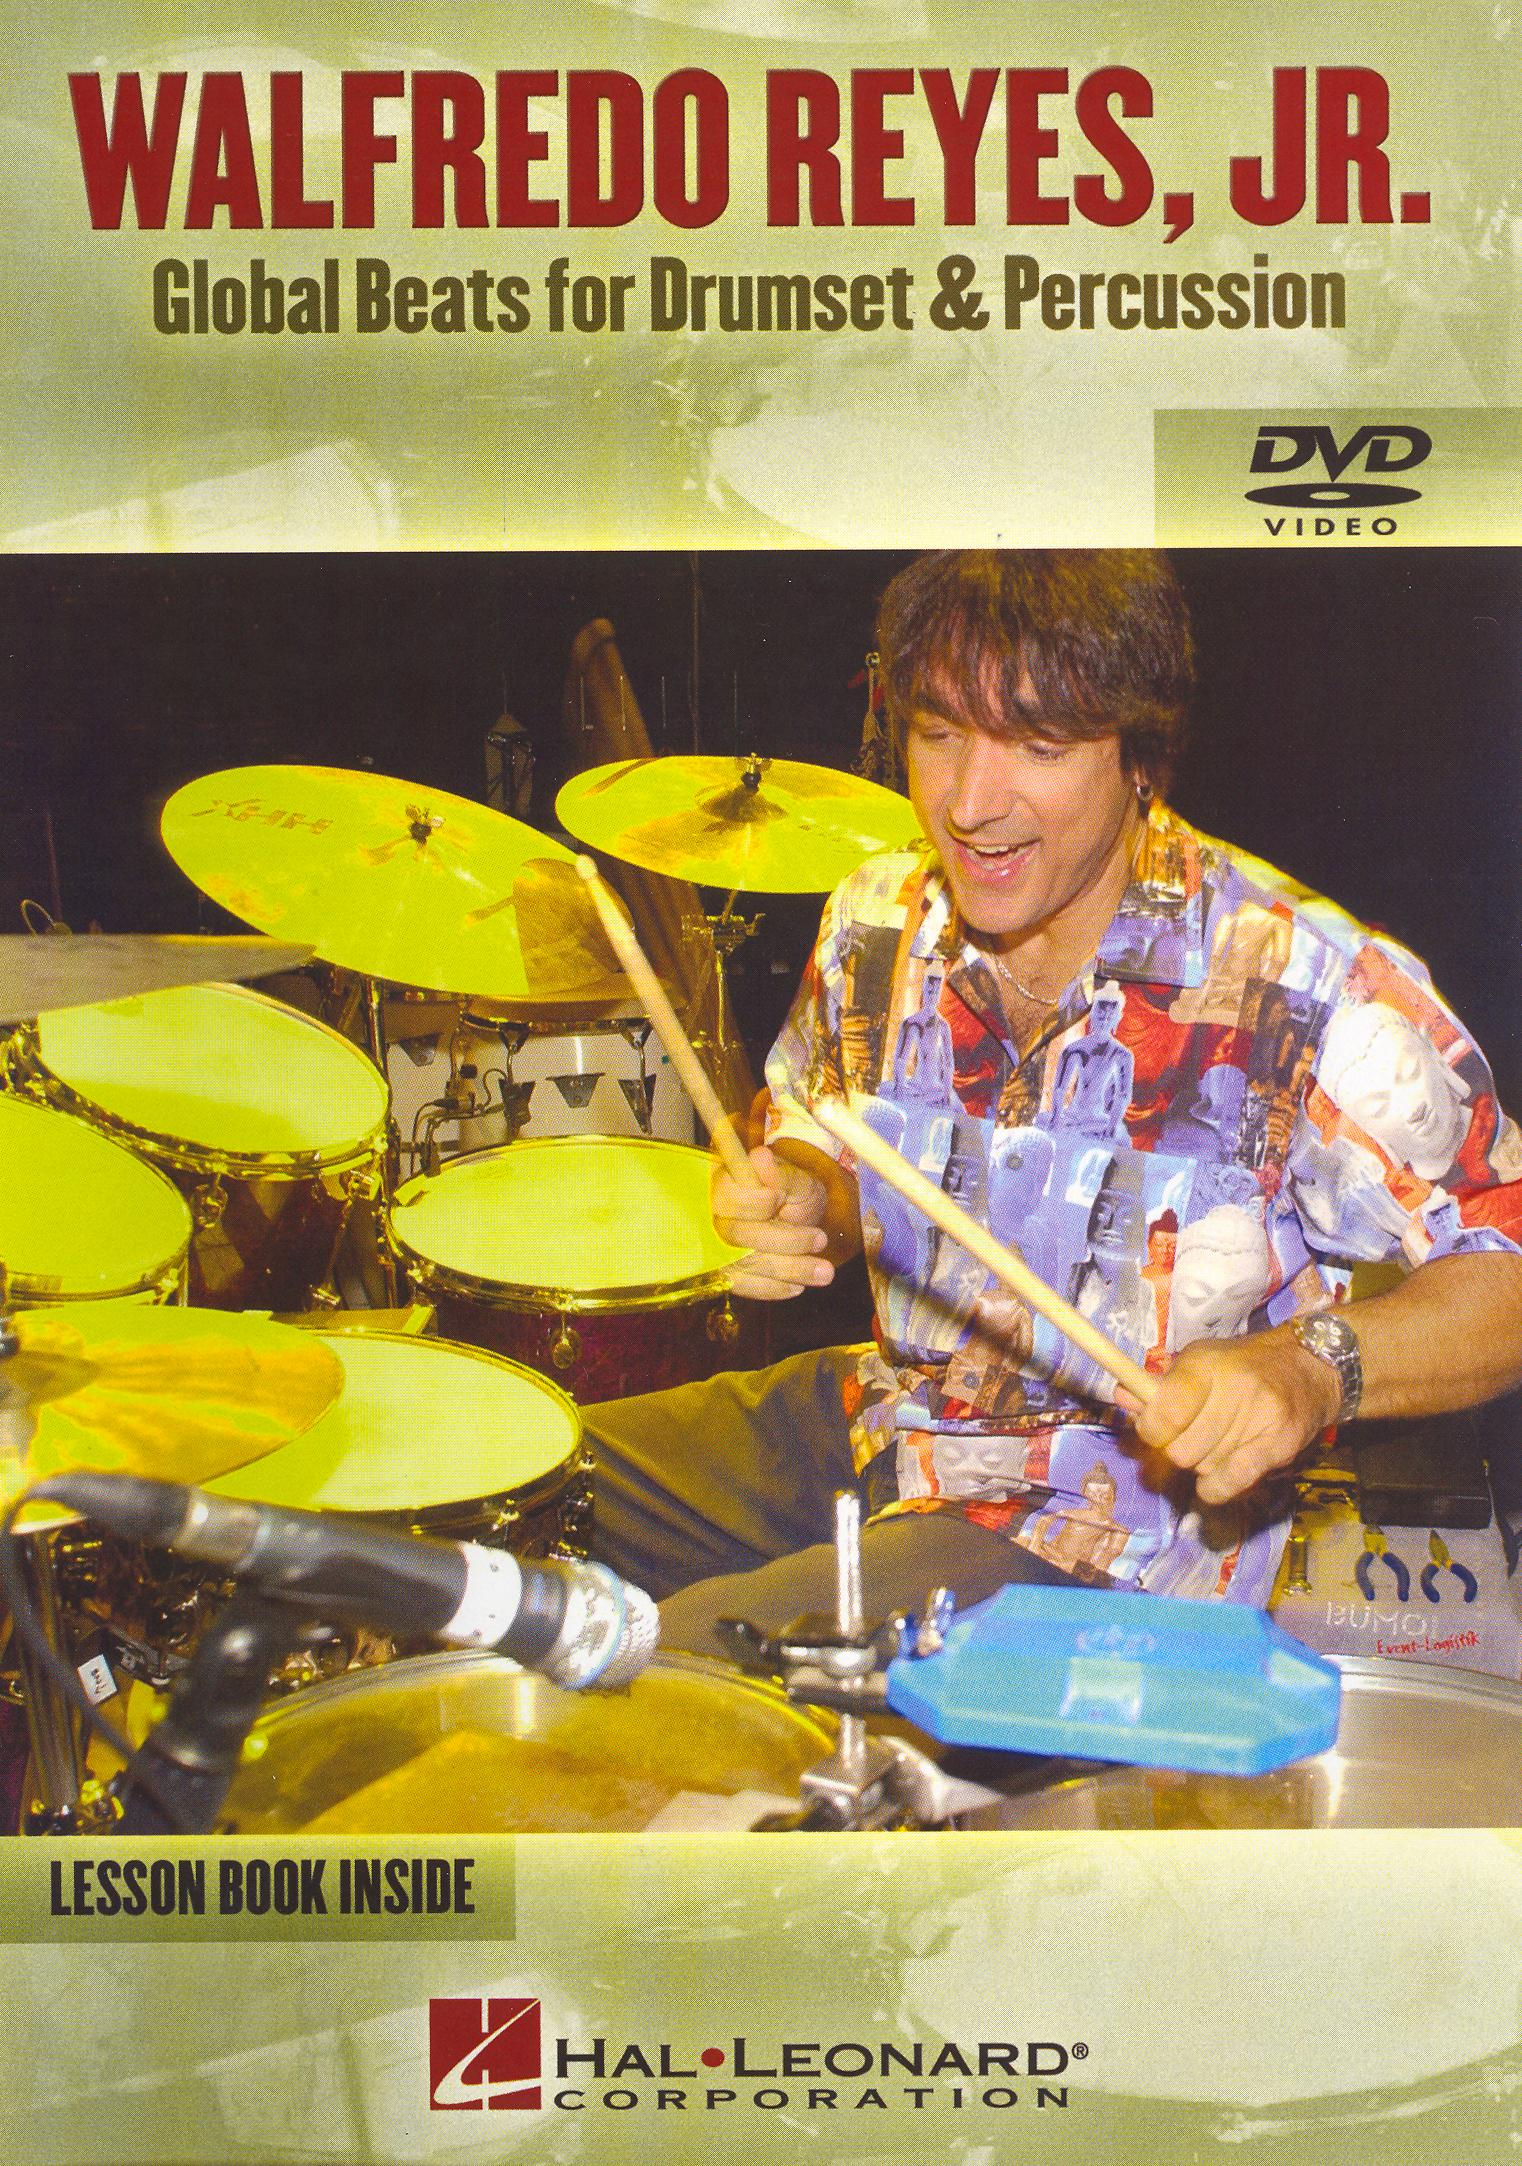 Walfredo Reyes Jr: Global Beats for Drumset and Percussion